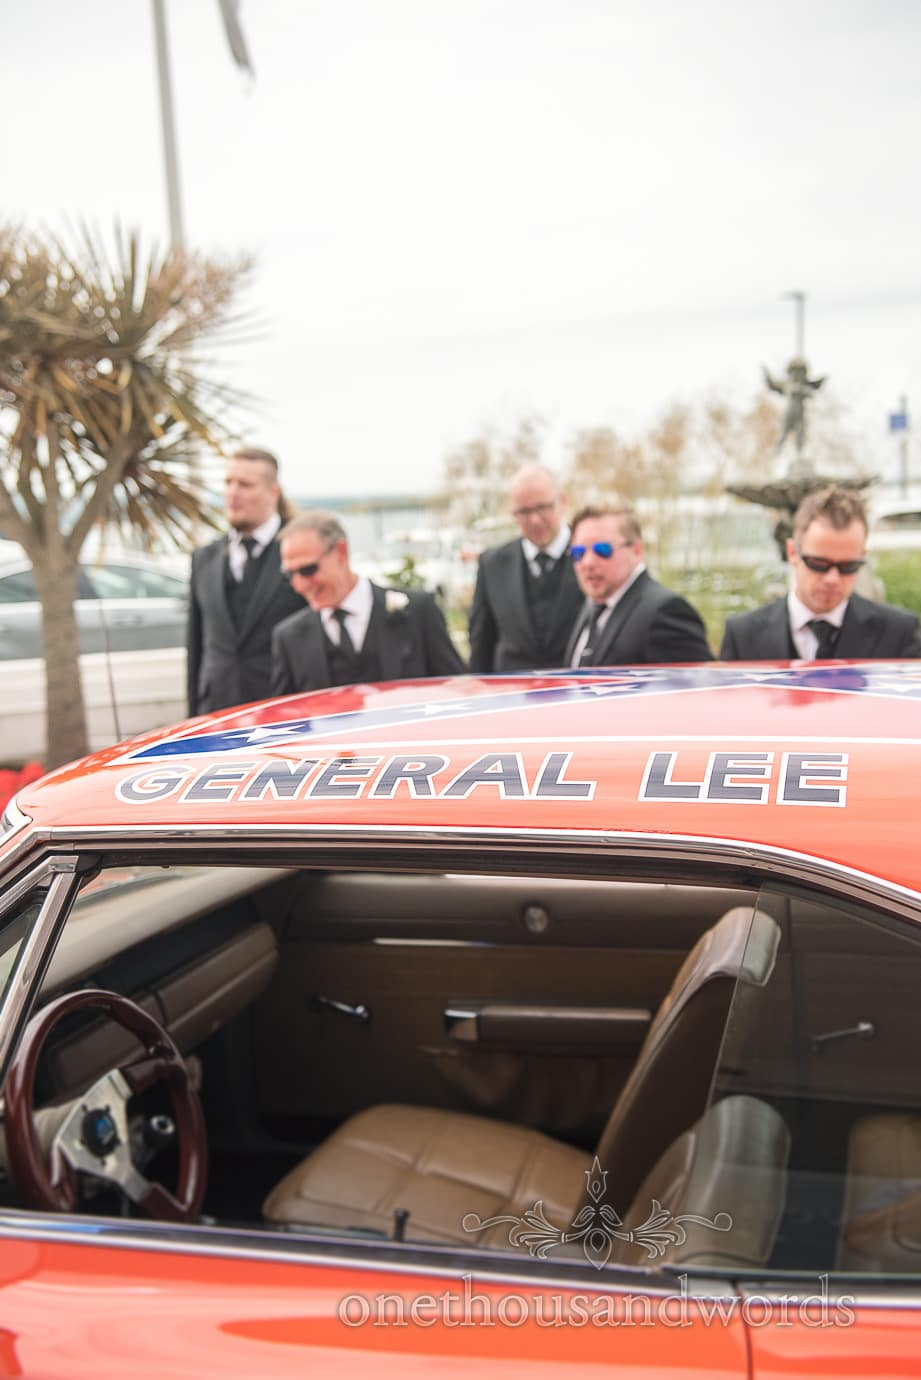 The General Lee wedding car roof with confederate flag and groomsmen on wedding morning